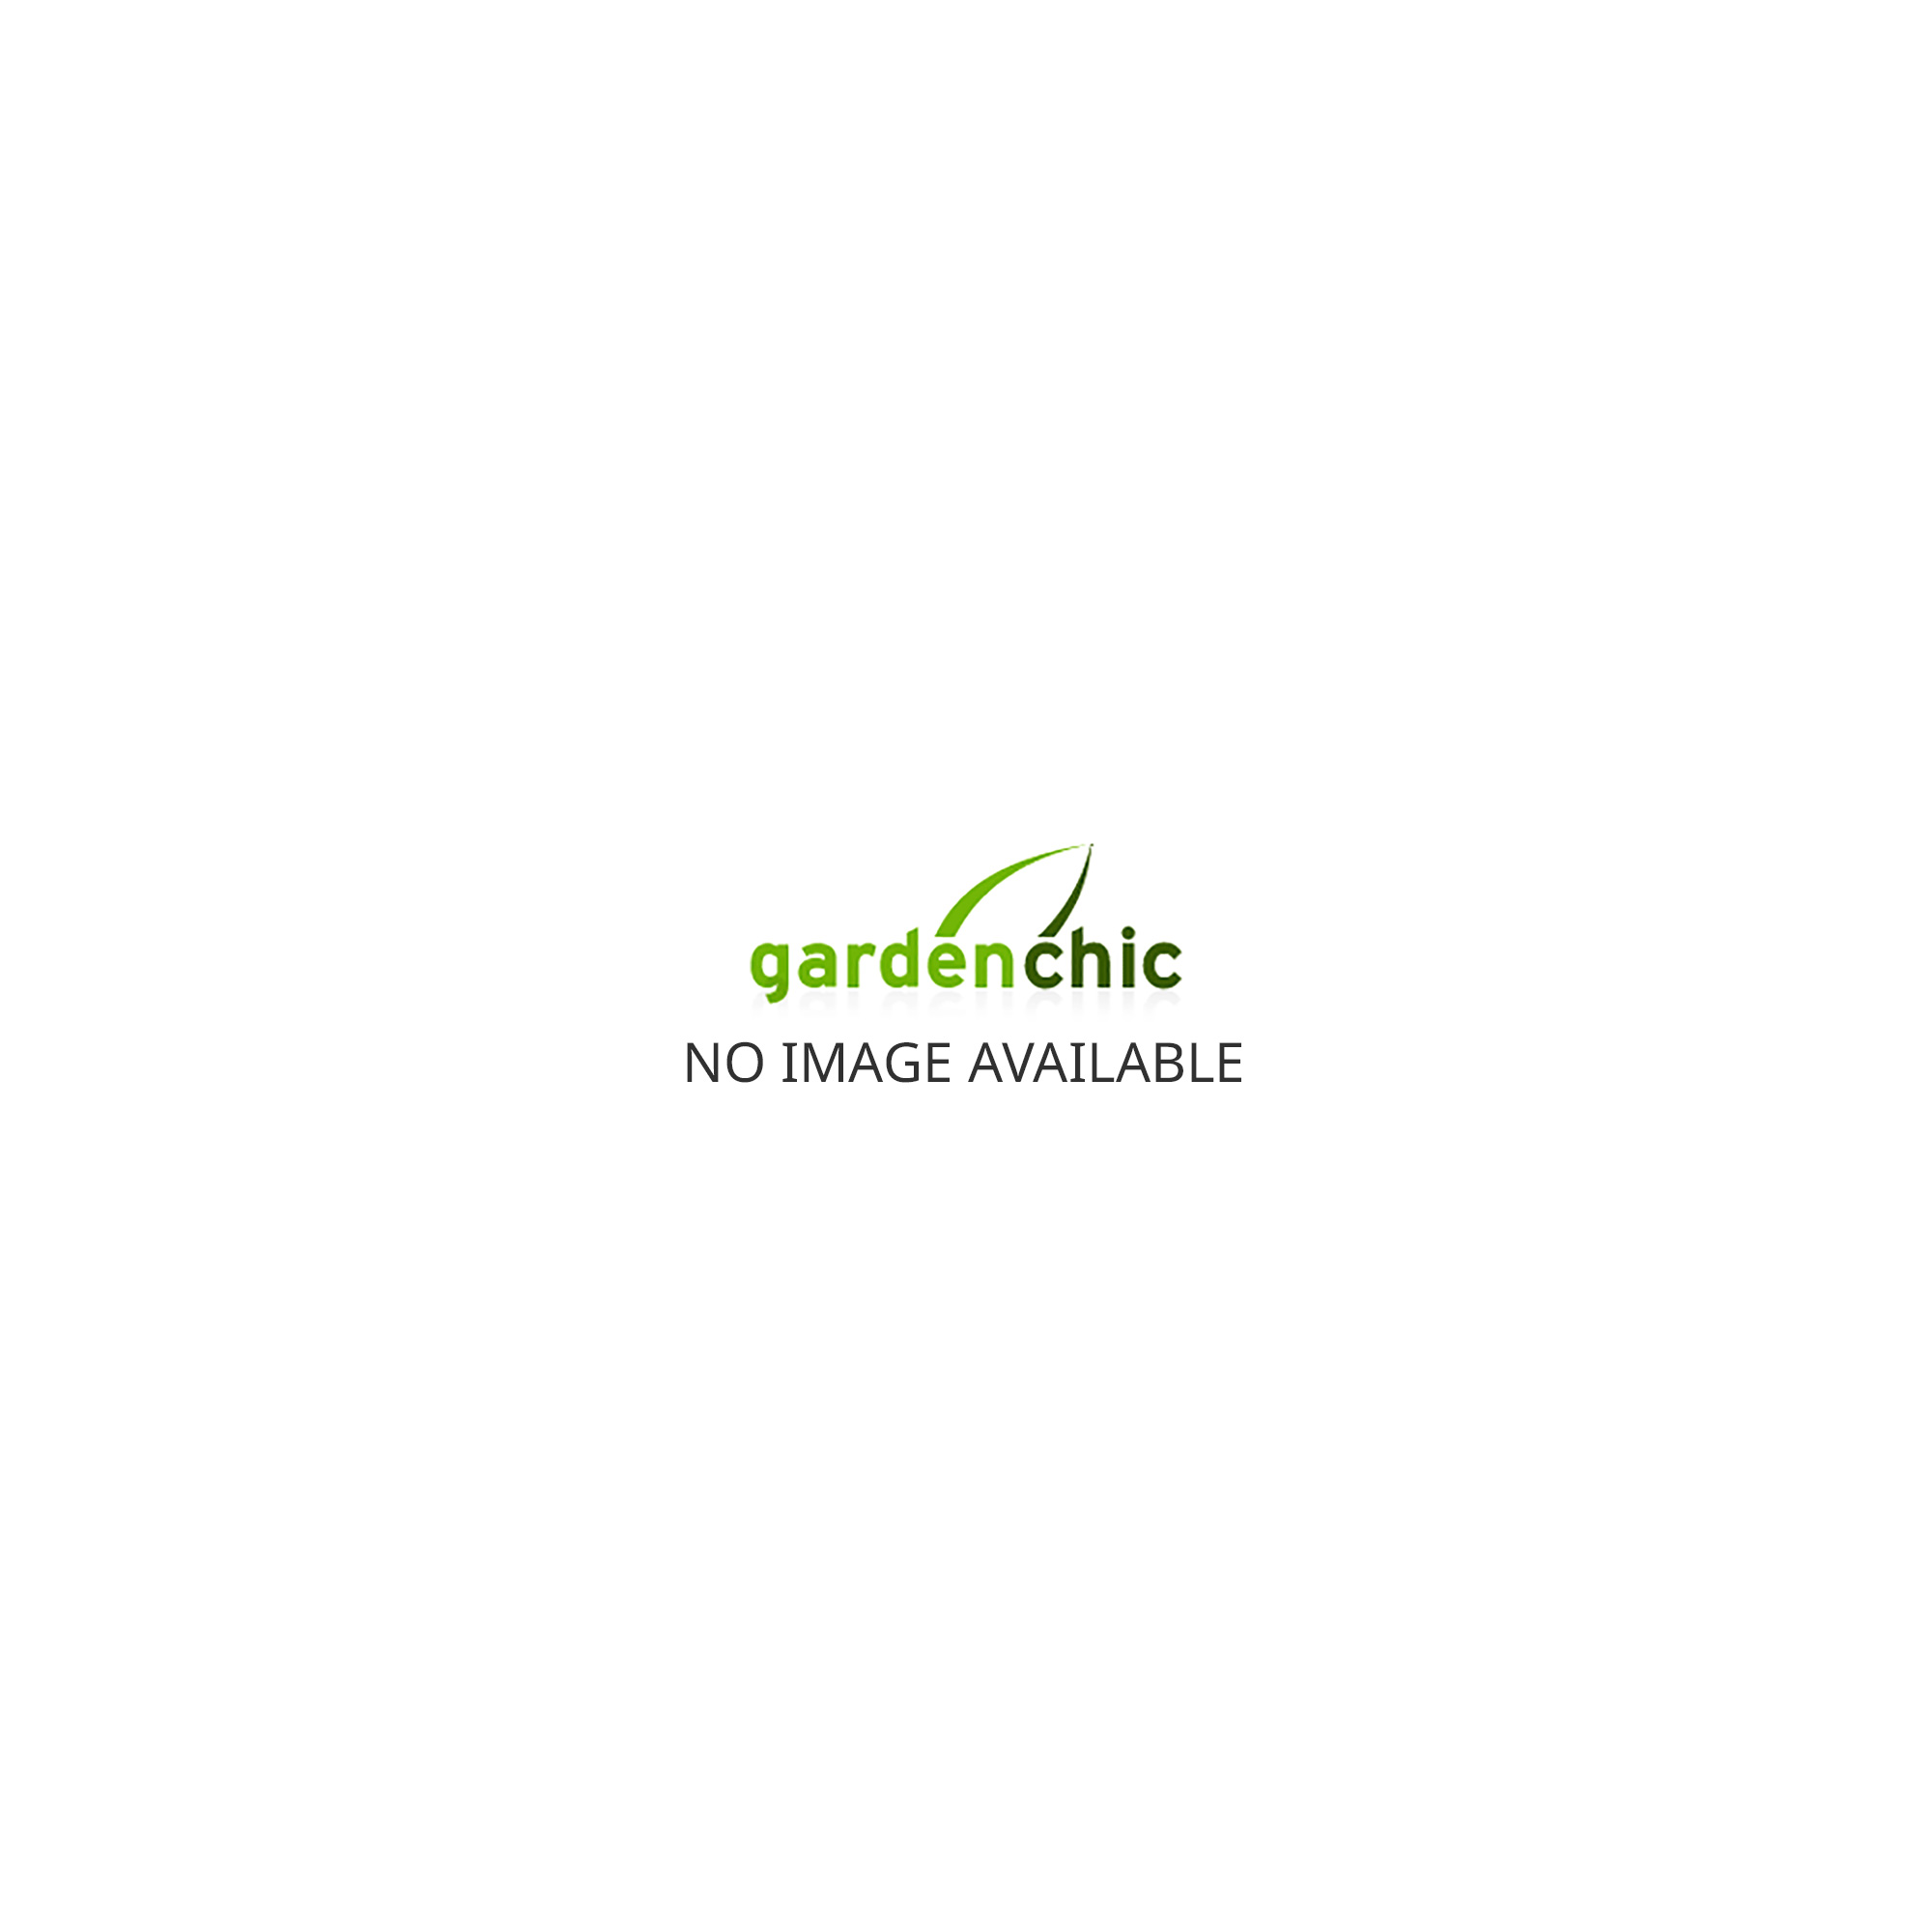 Birdlip 4 x 4 Greenhouse (Black) FREE Waterbutt, Connection Kit and Blinds until May 2018